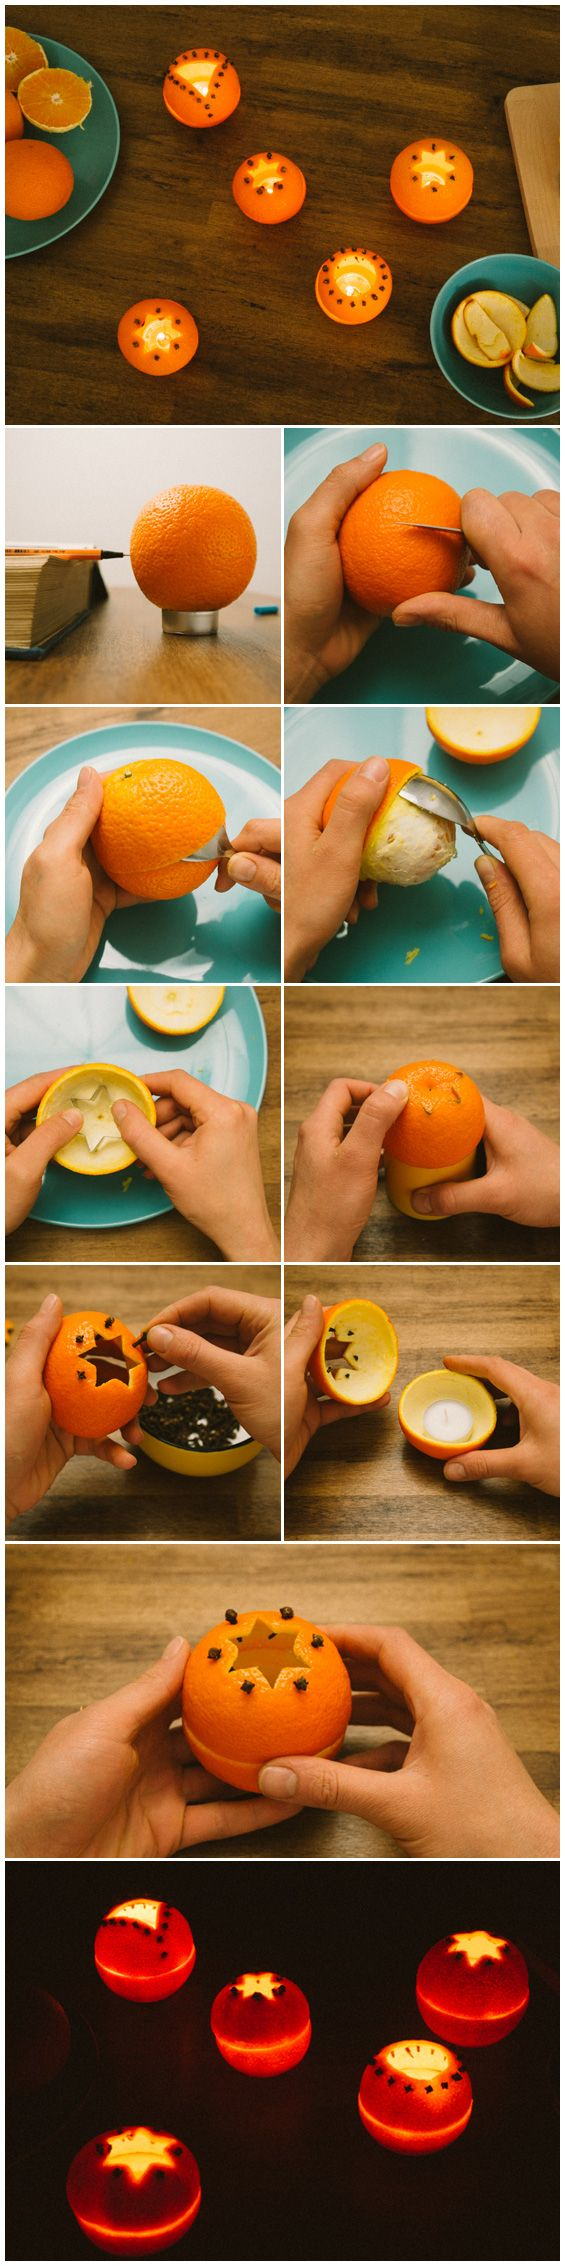 Adorable Homemade Orange Peel Candle....Easy Step by Step Tutorials on How to Make Orange Peel Candle #DIYCrafts